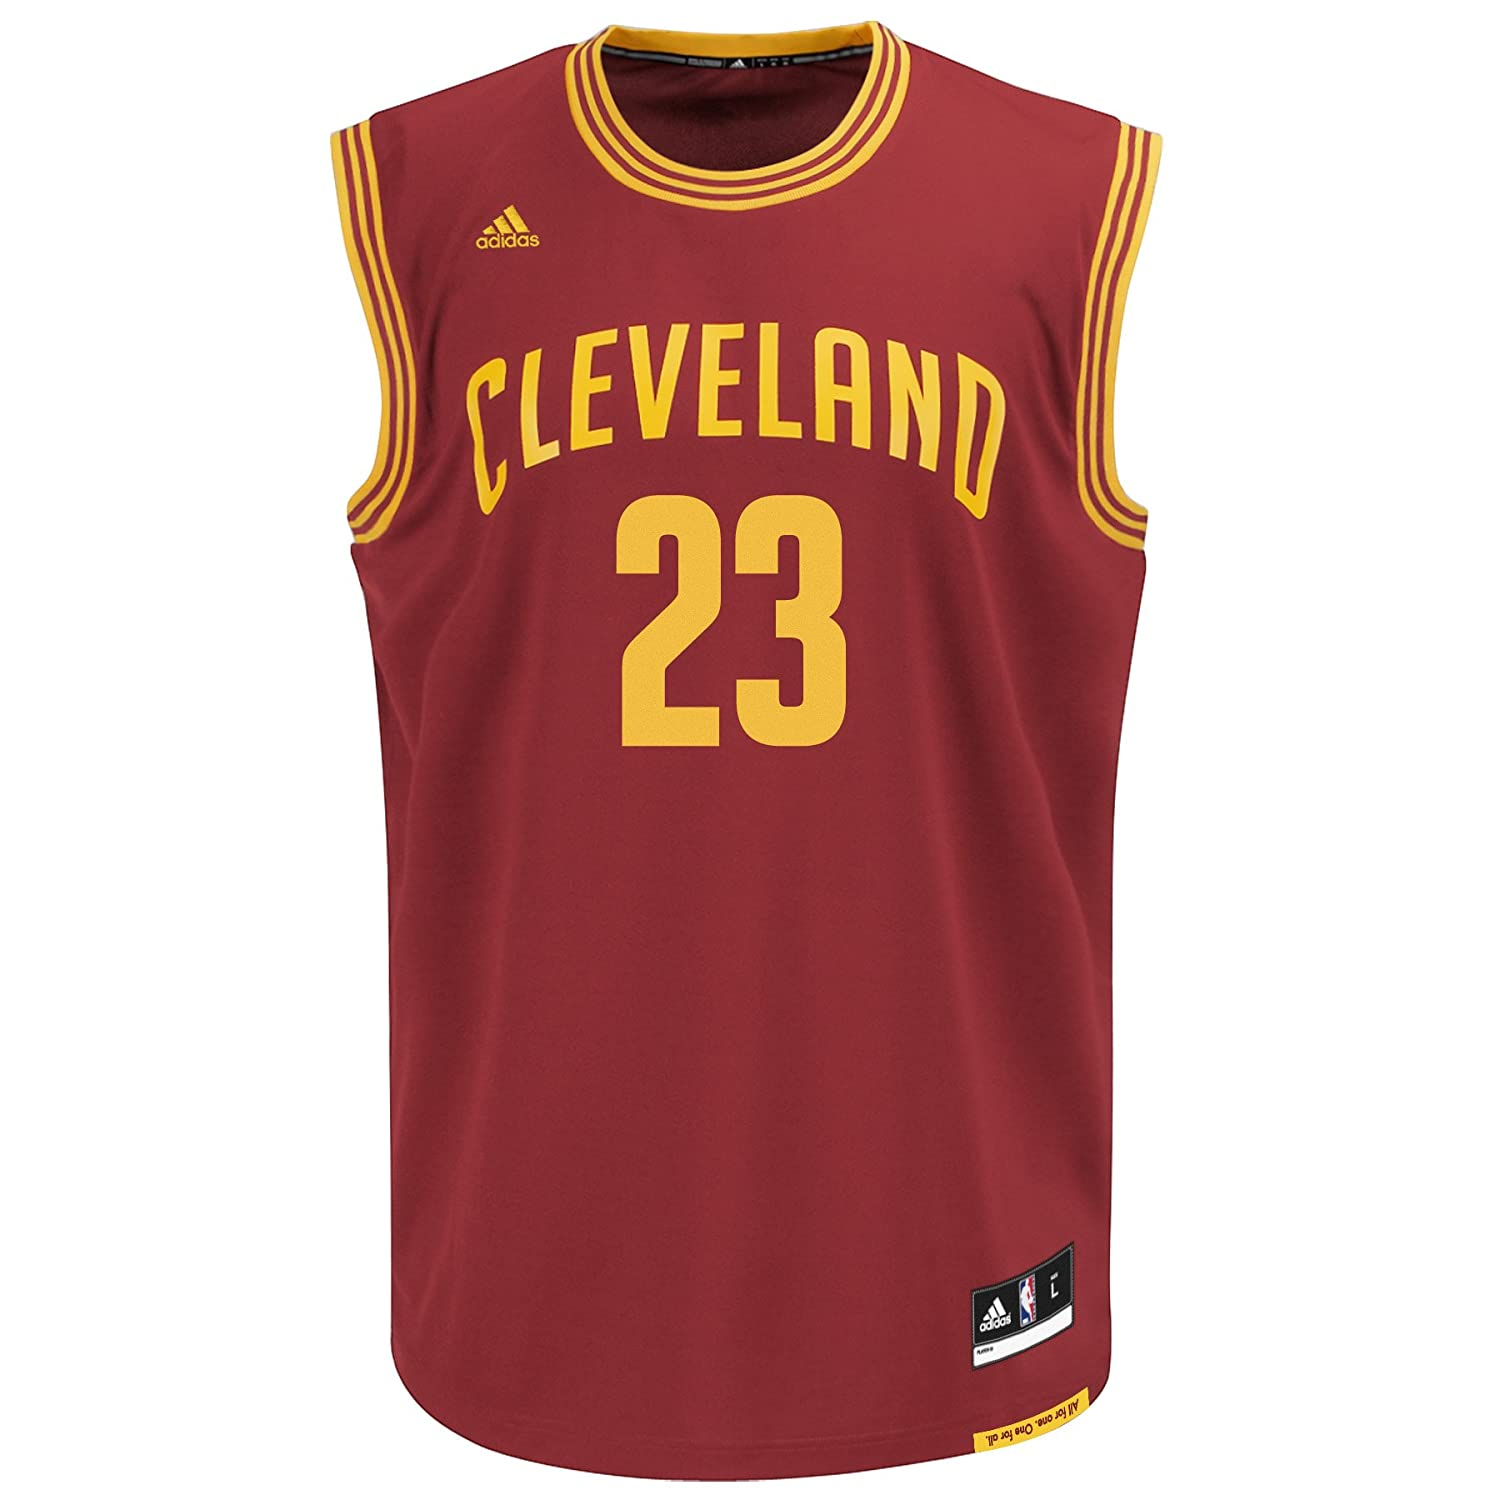 NBA Cleveland Cavaliers, LeBron James, Replica Road Youth Jersey, Large, Burgundy телефон dect philips m3301w 51